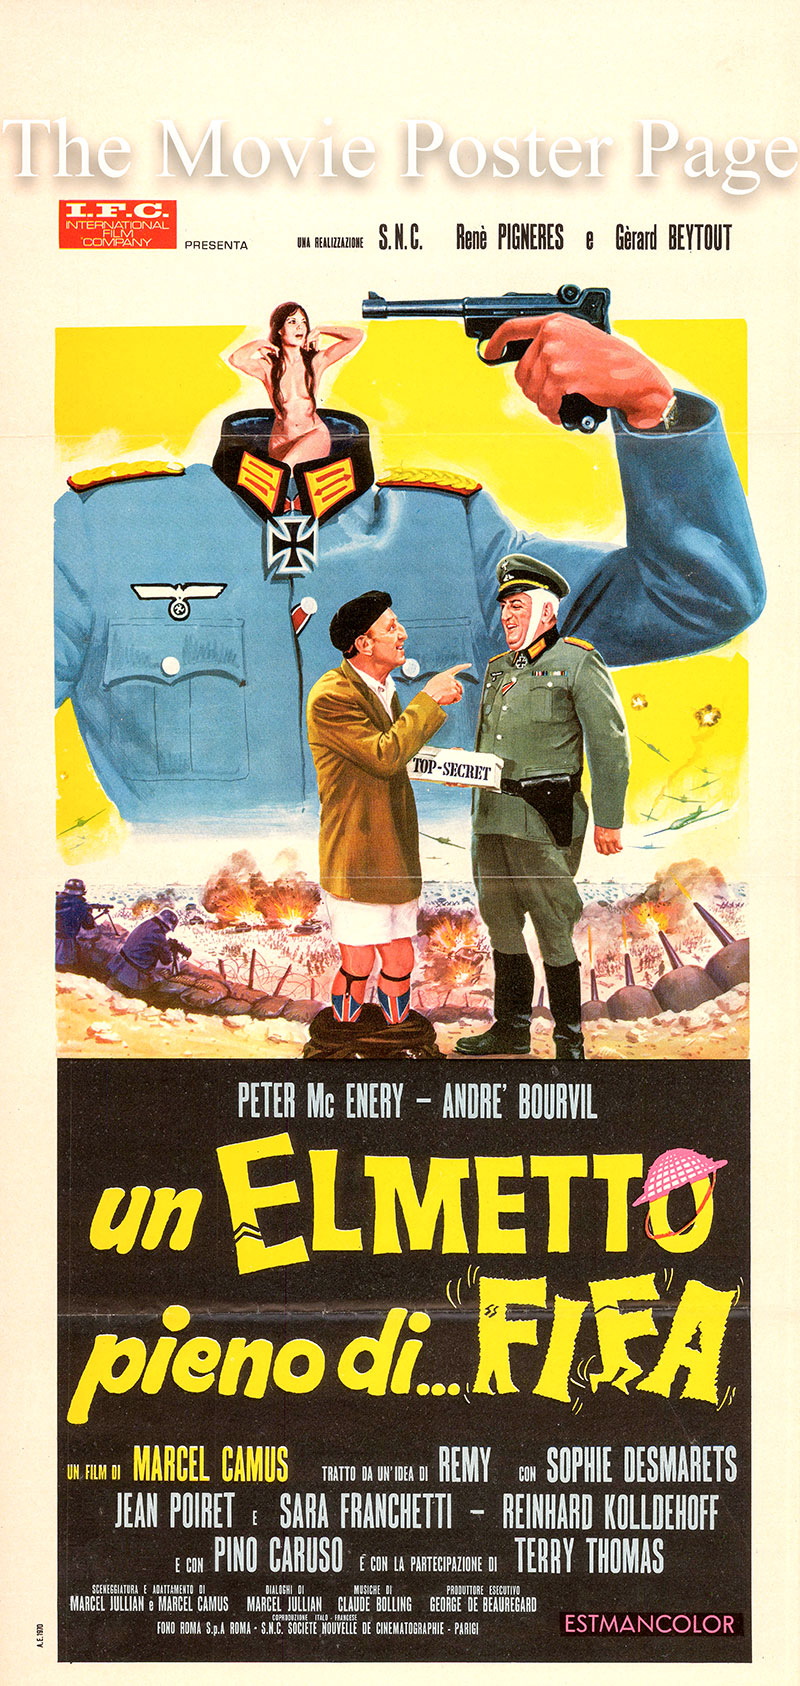 Pictured an Italian promotional locandina poster for the 1970 Marcel Camus film Atlantic Wall starring Bourvil as Léon Duchemin.